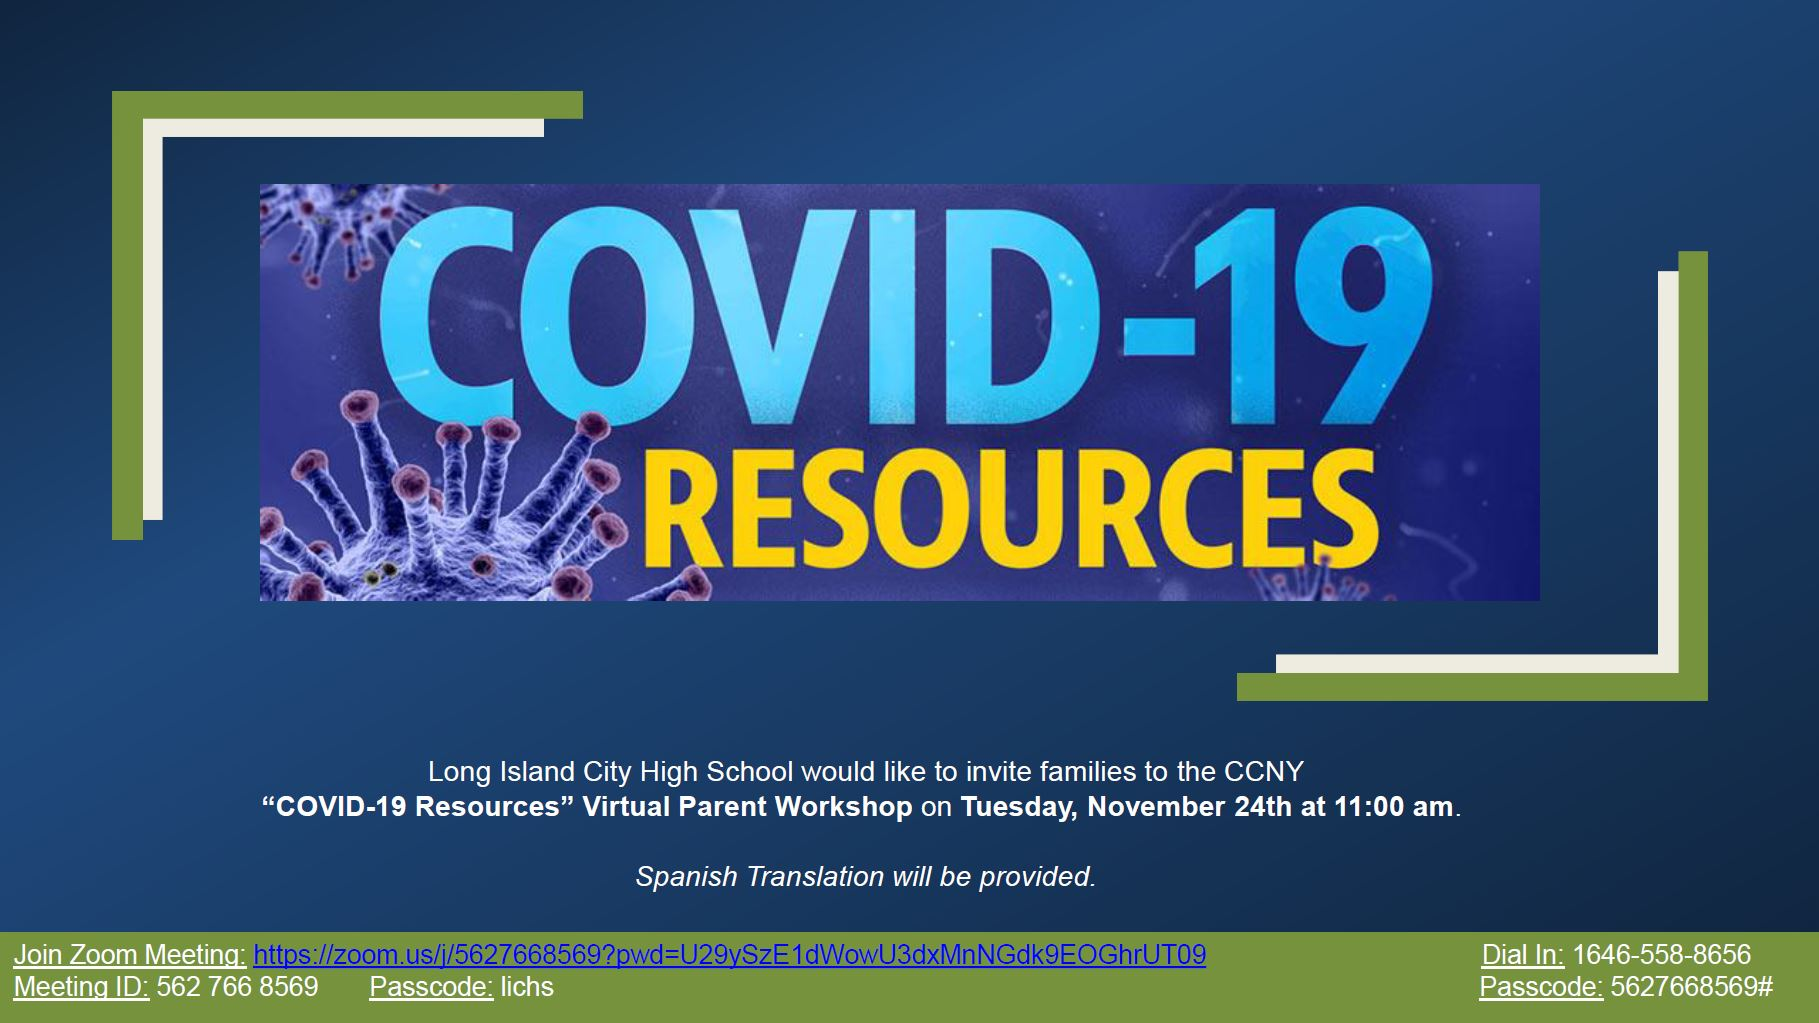 COVID-19 Resources Virtual Parent Workshop flyer on Tuesday, November 24th at 11:00 am